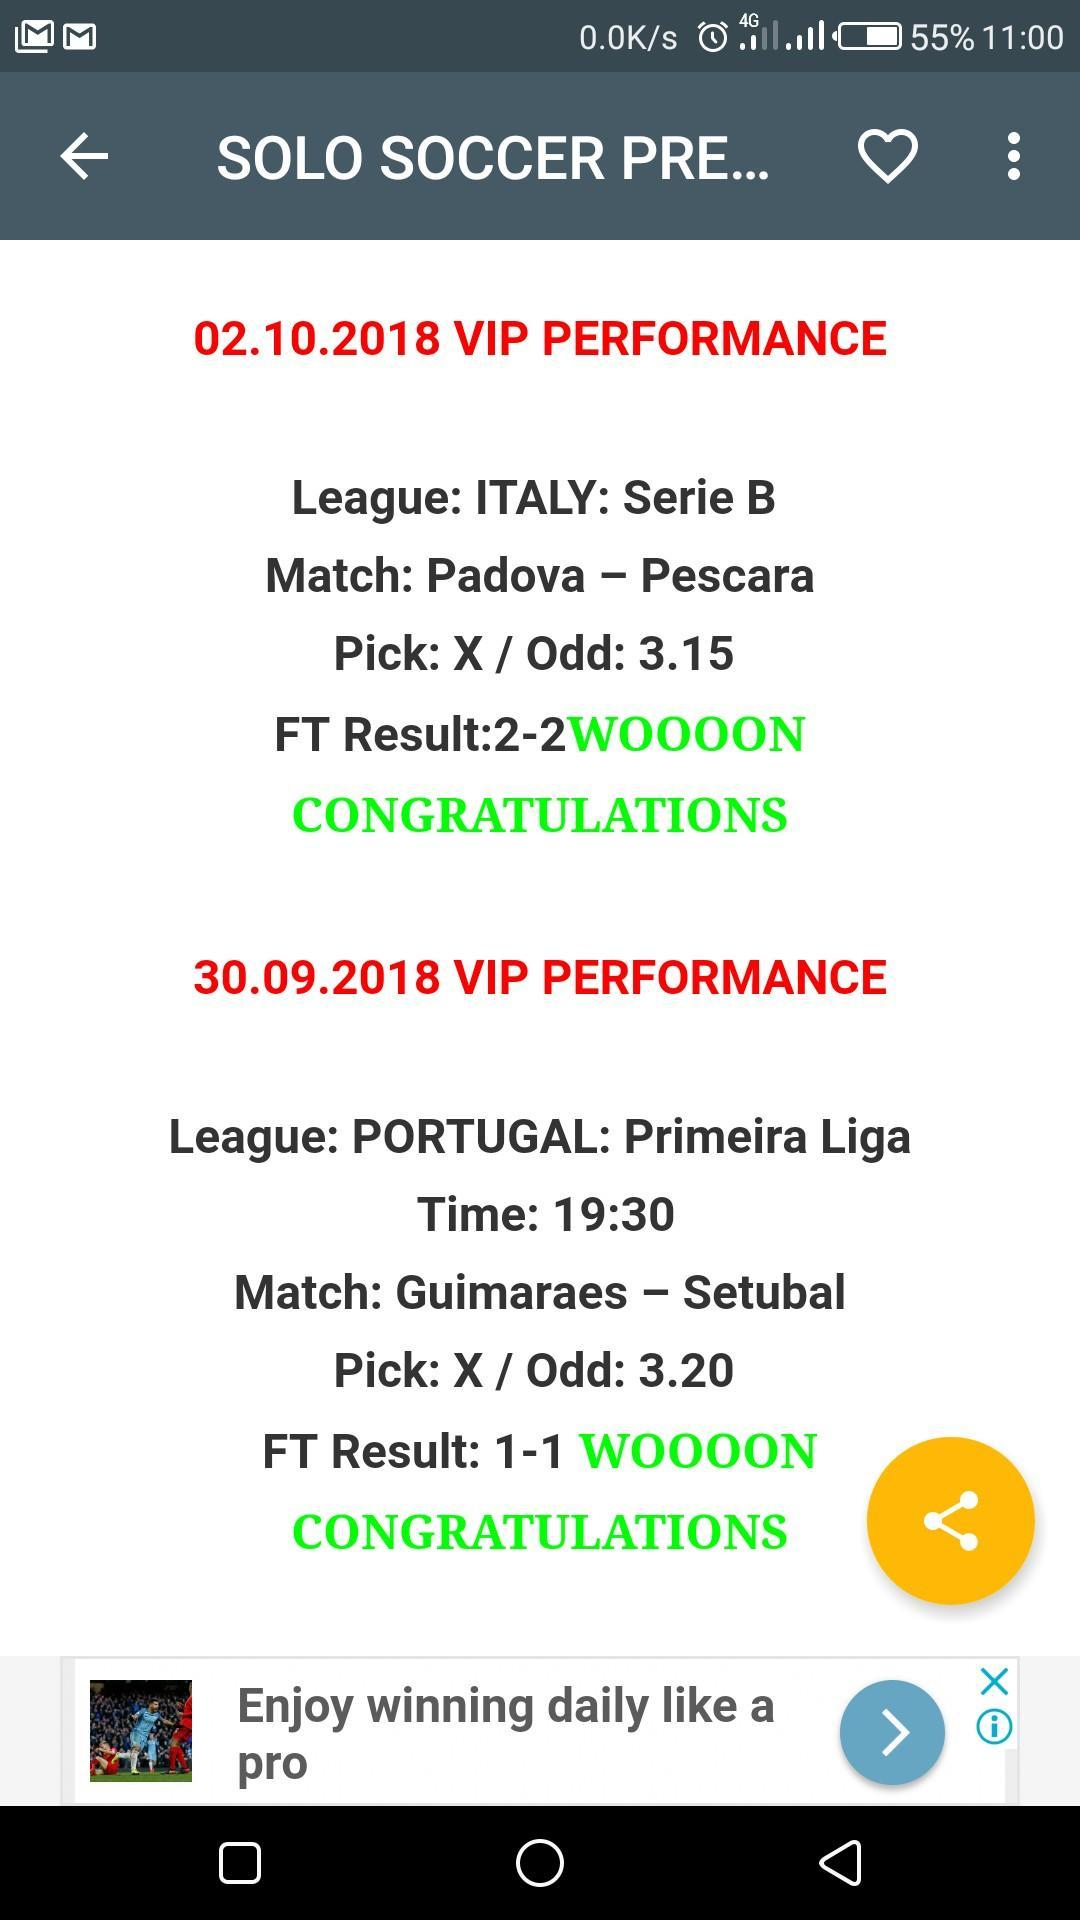 SOLO SOCCER PREDICTIONS for Android - APK Download